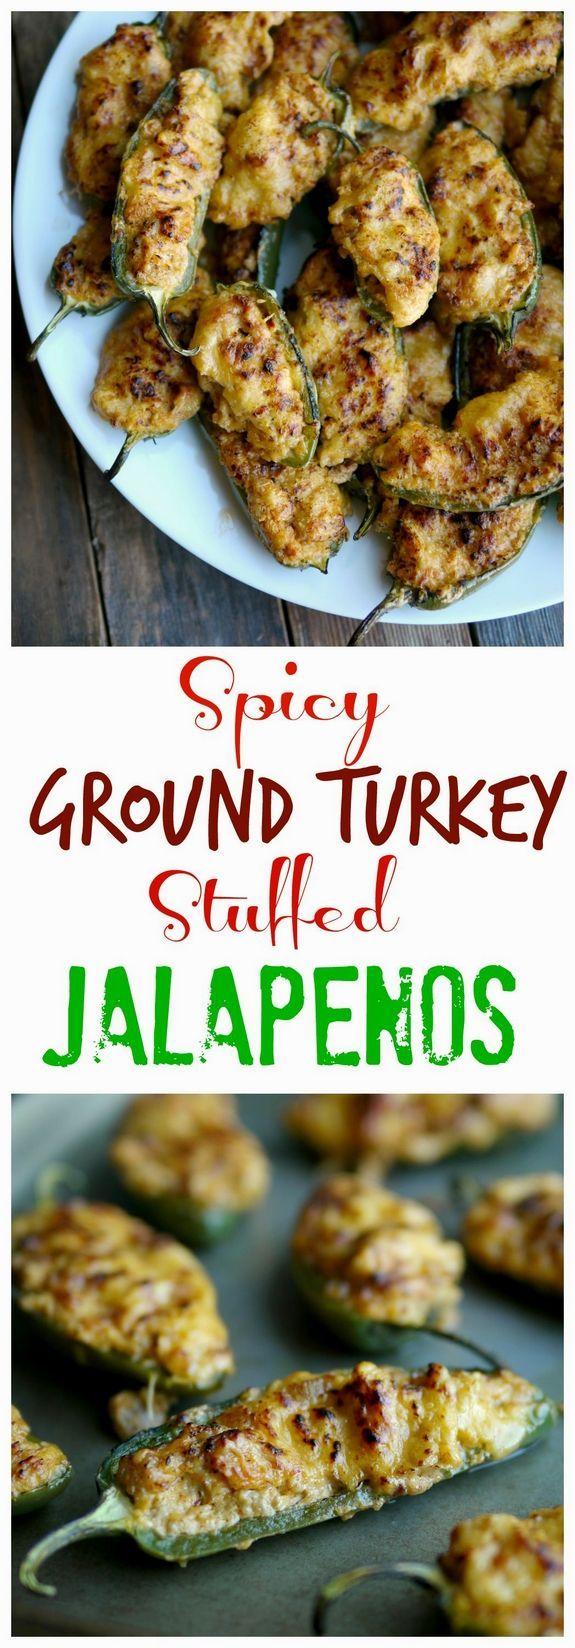 Enjoy all of the flavor of stuffed jalapenos in this healthier version of a game day favorite from NoblePig.com.